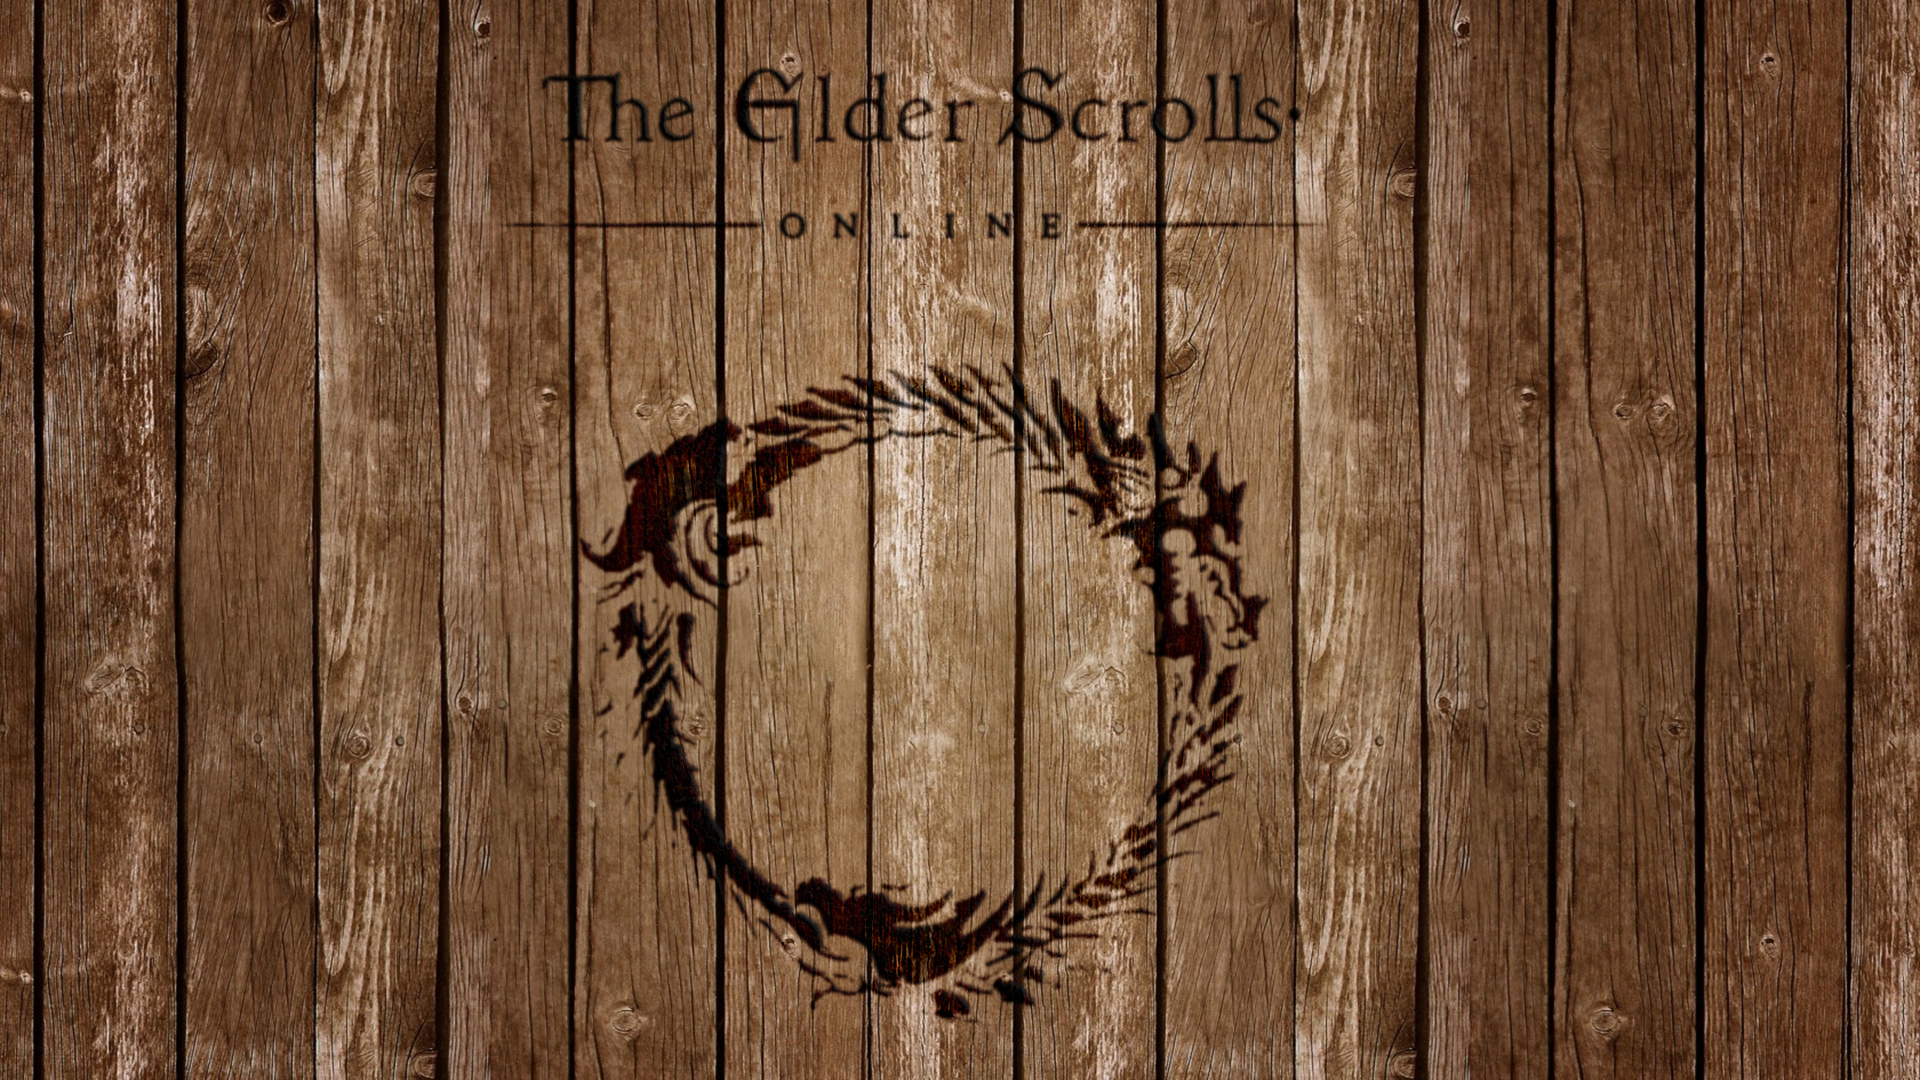 The Elder Scrolls Online wallpaper 10